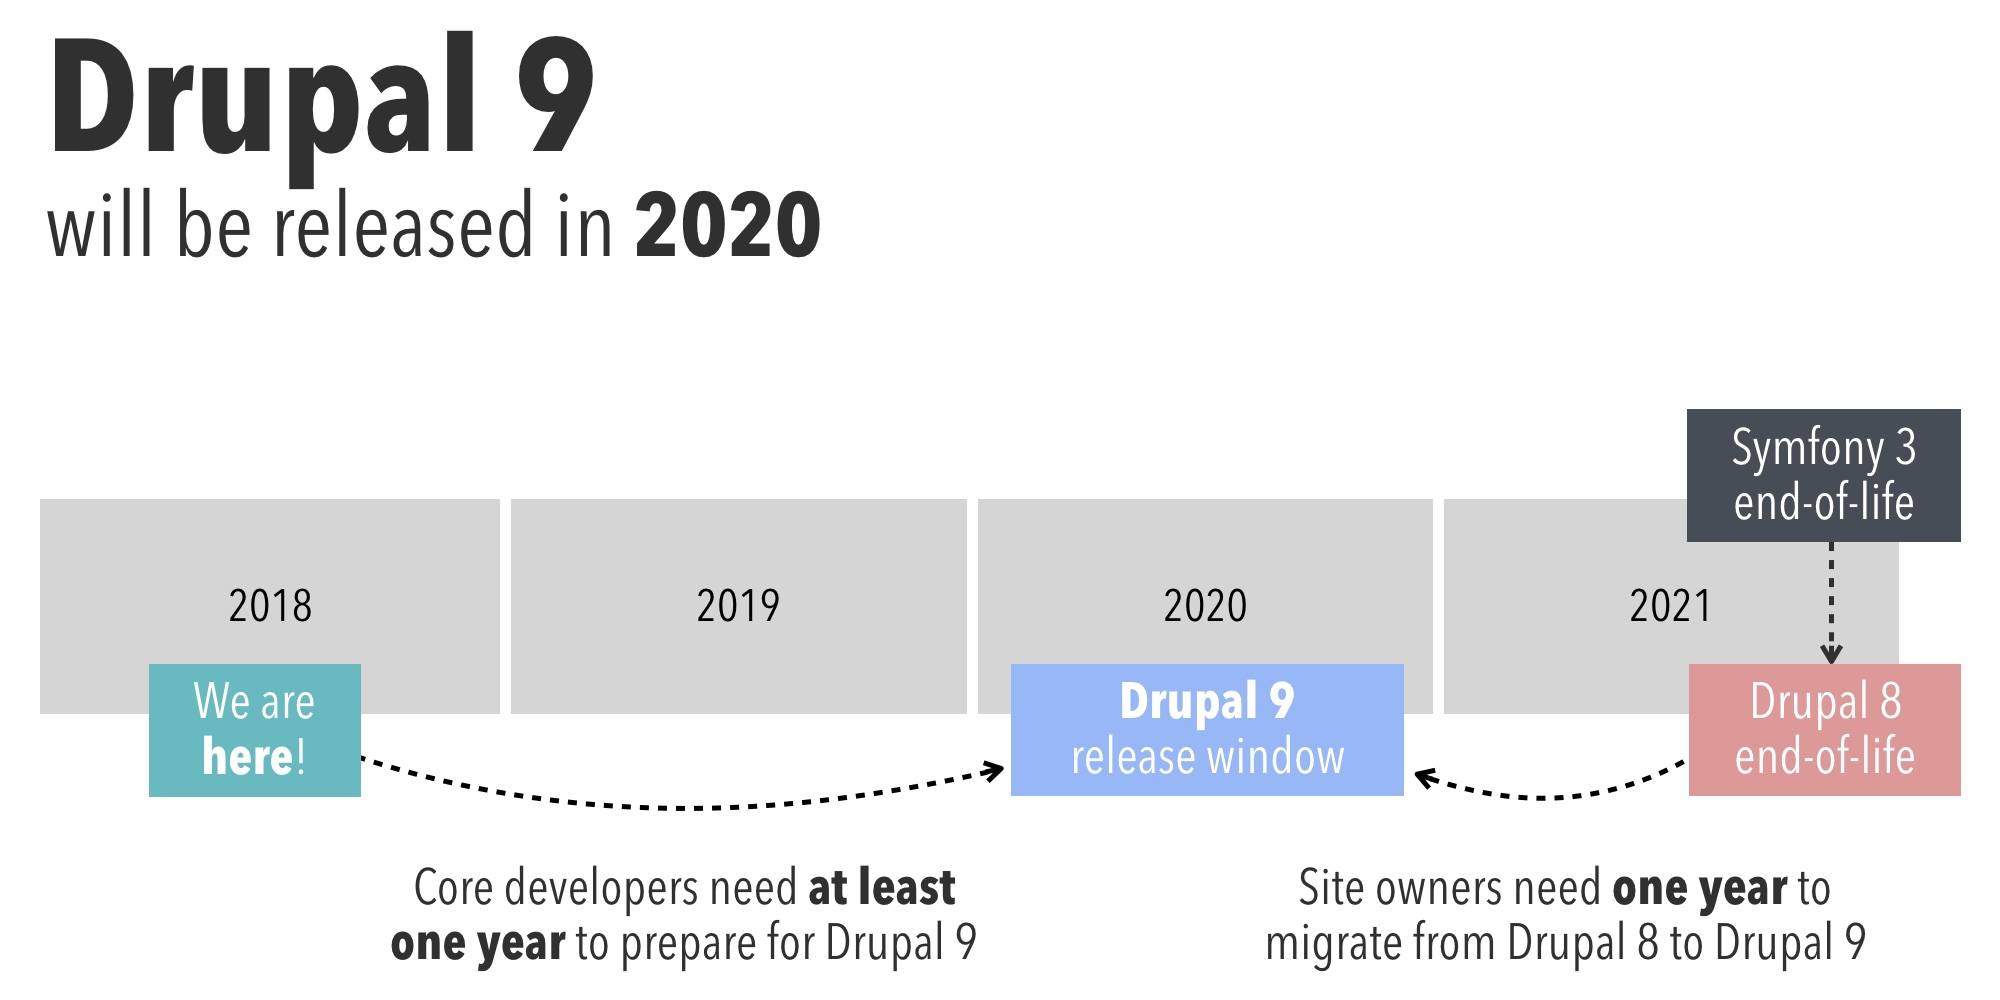 Drupal 9 will be released in 2020